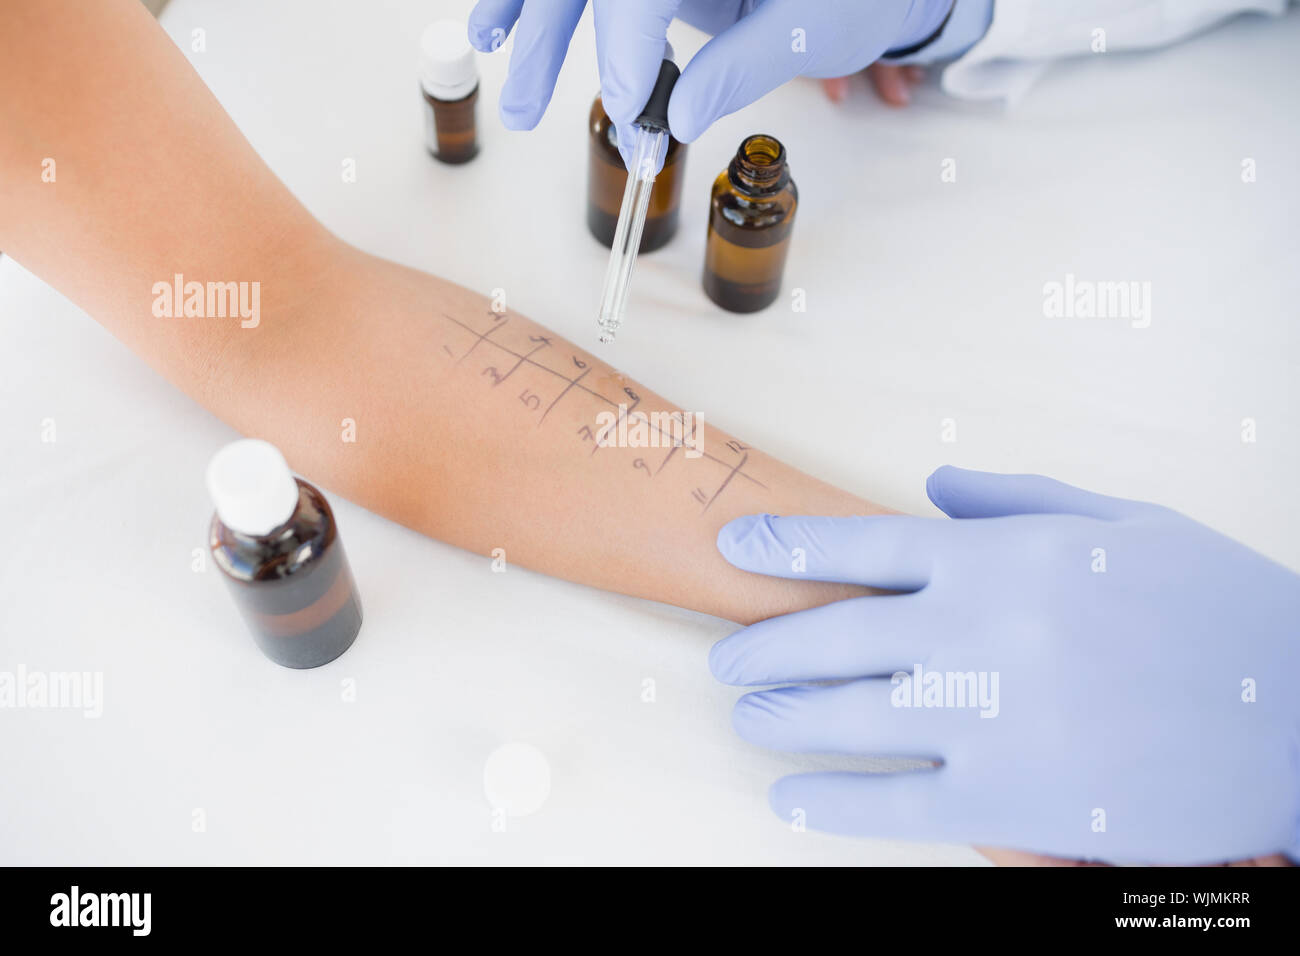 Closeup of doctor dropping medicine on hand of patient in clinic - Stock Photo